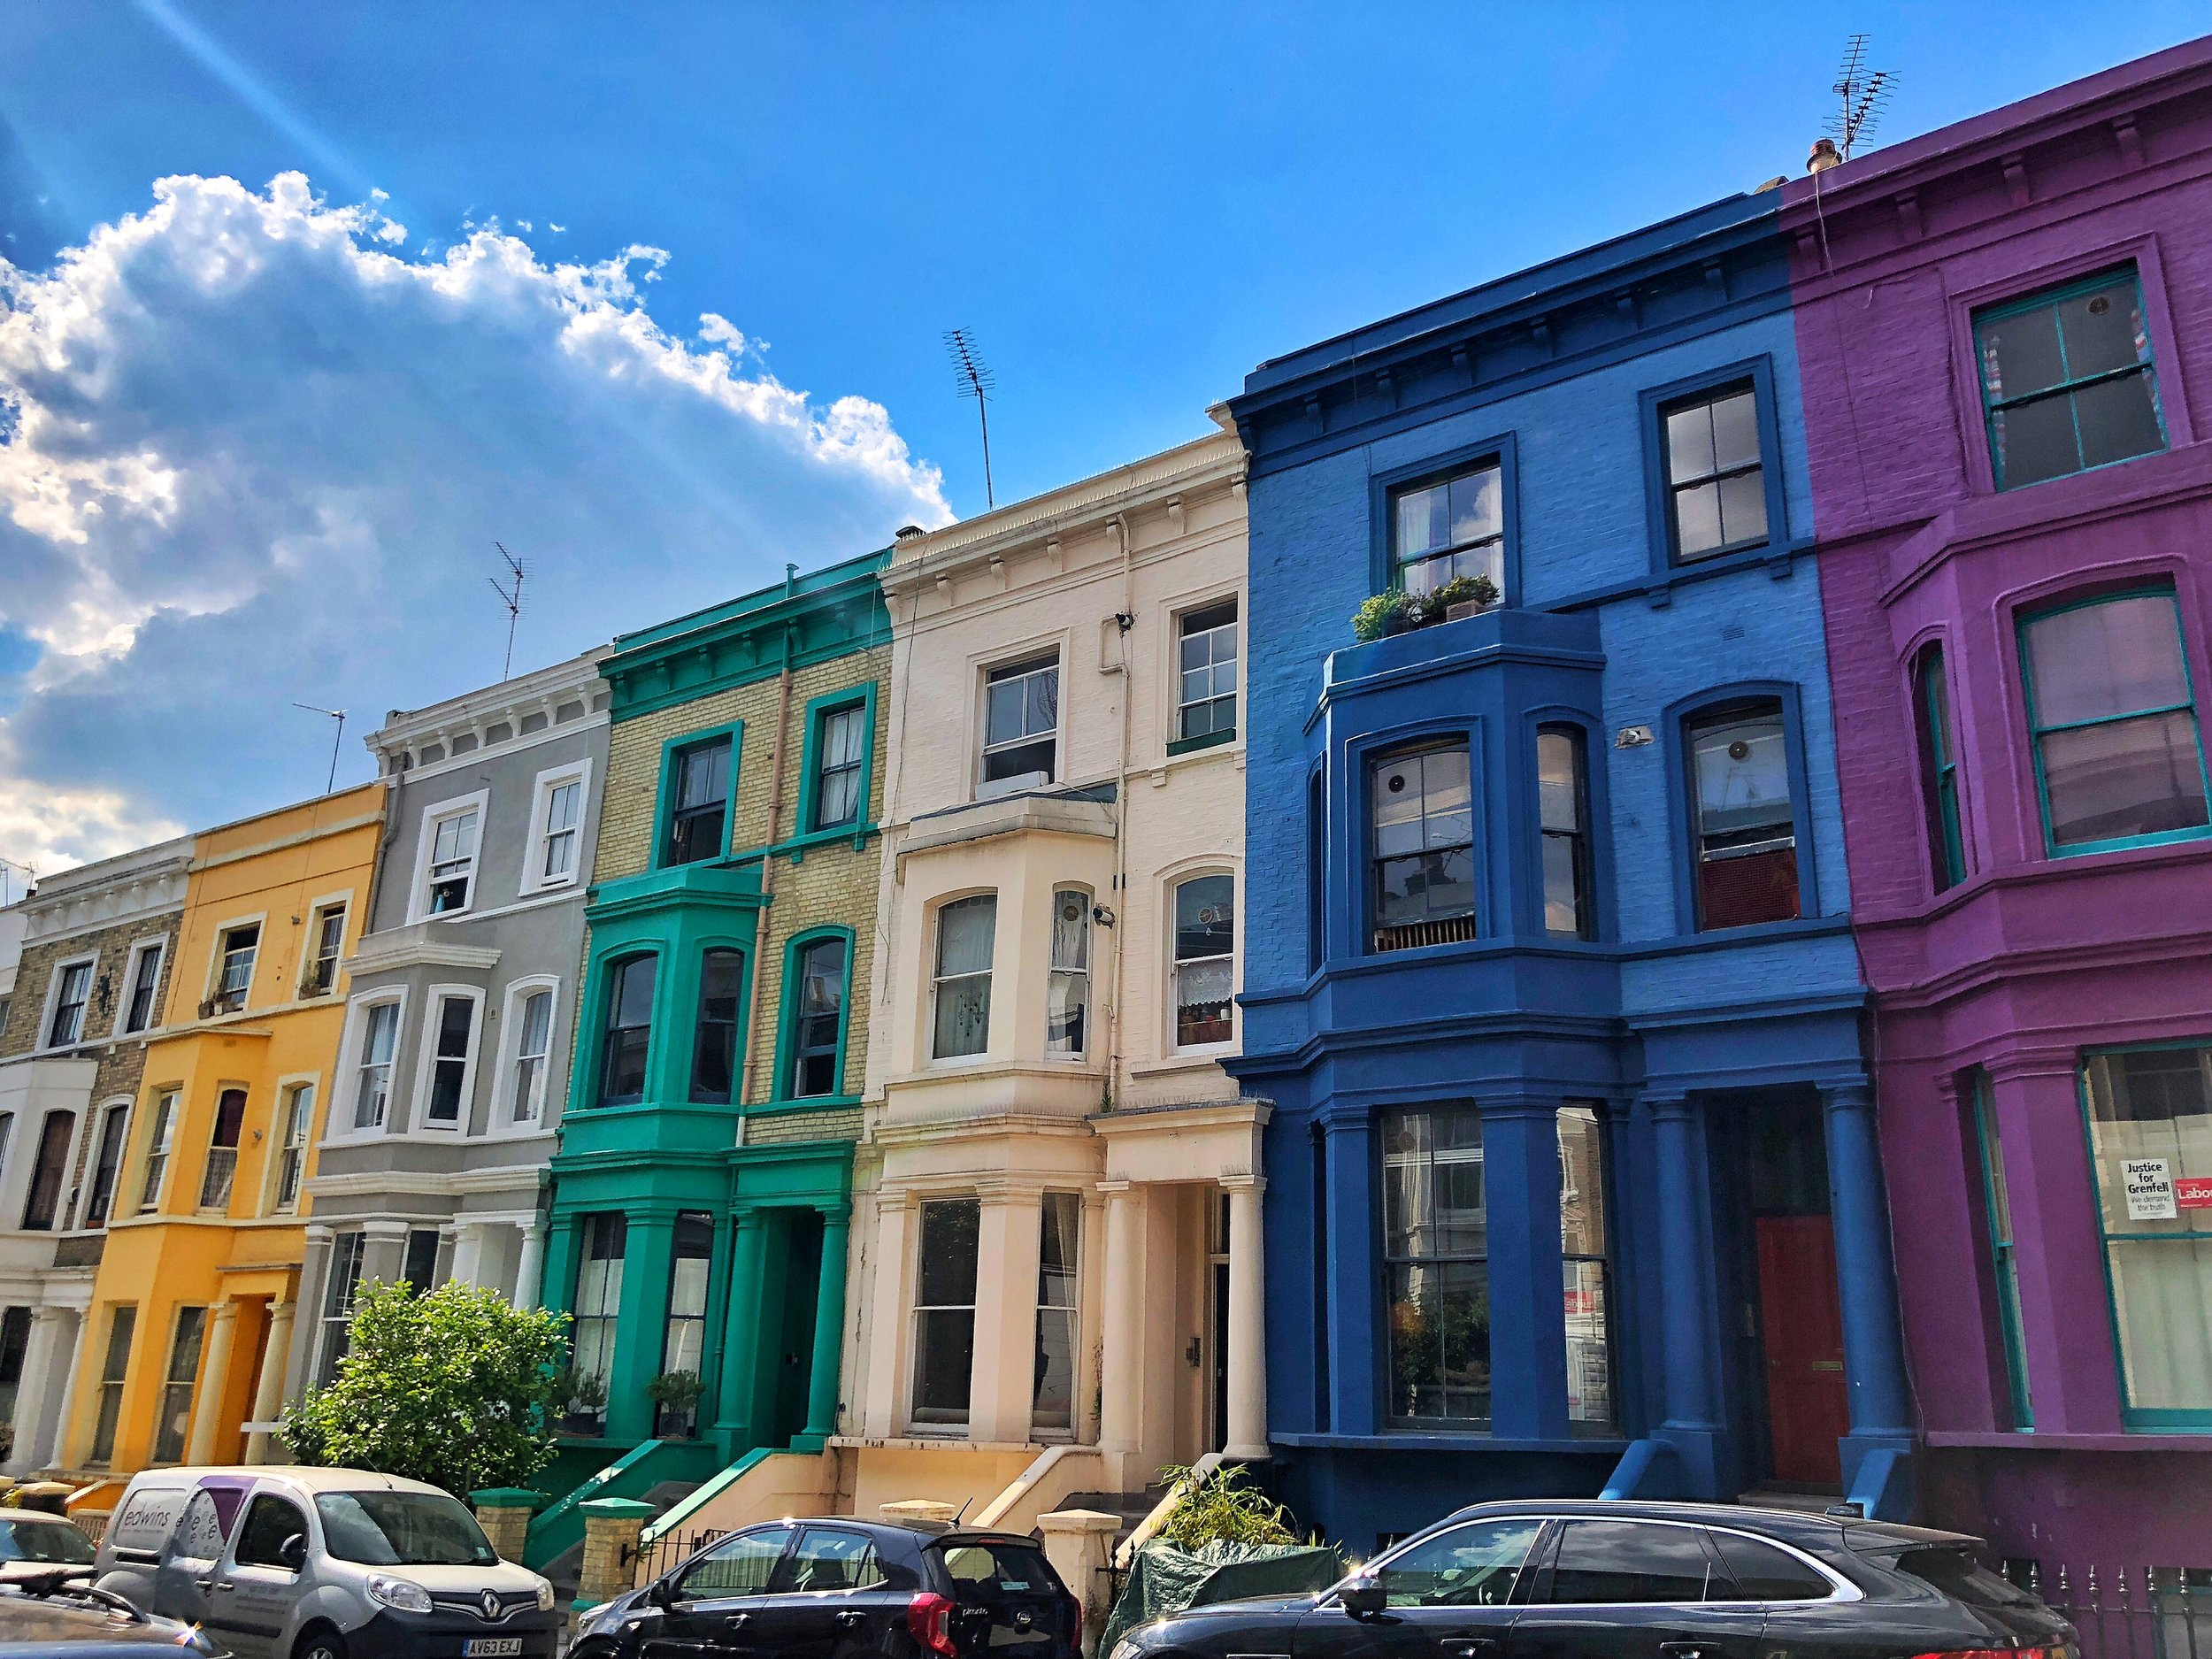 notting hill colored walk ups.jpg